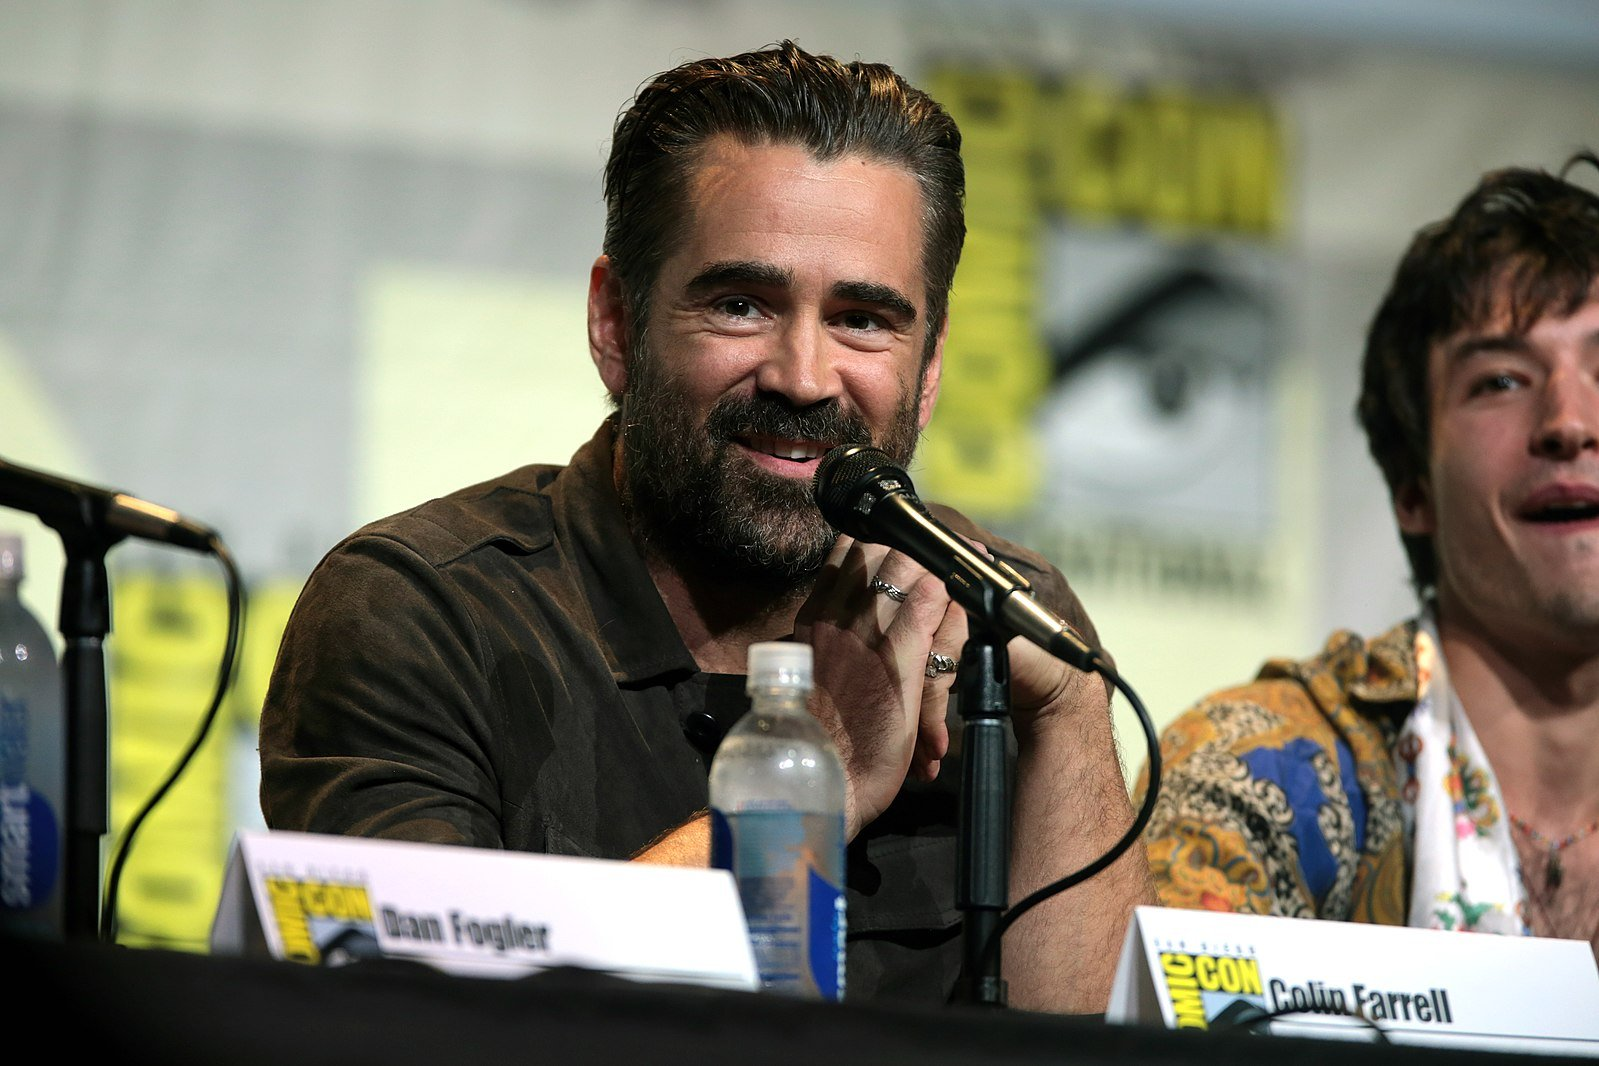 creative commons photo of Colin Farrell from Gage Skidmore